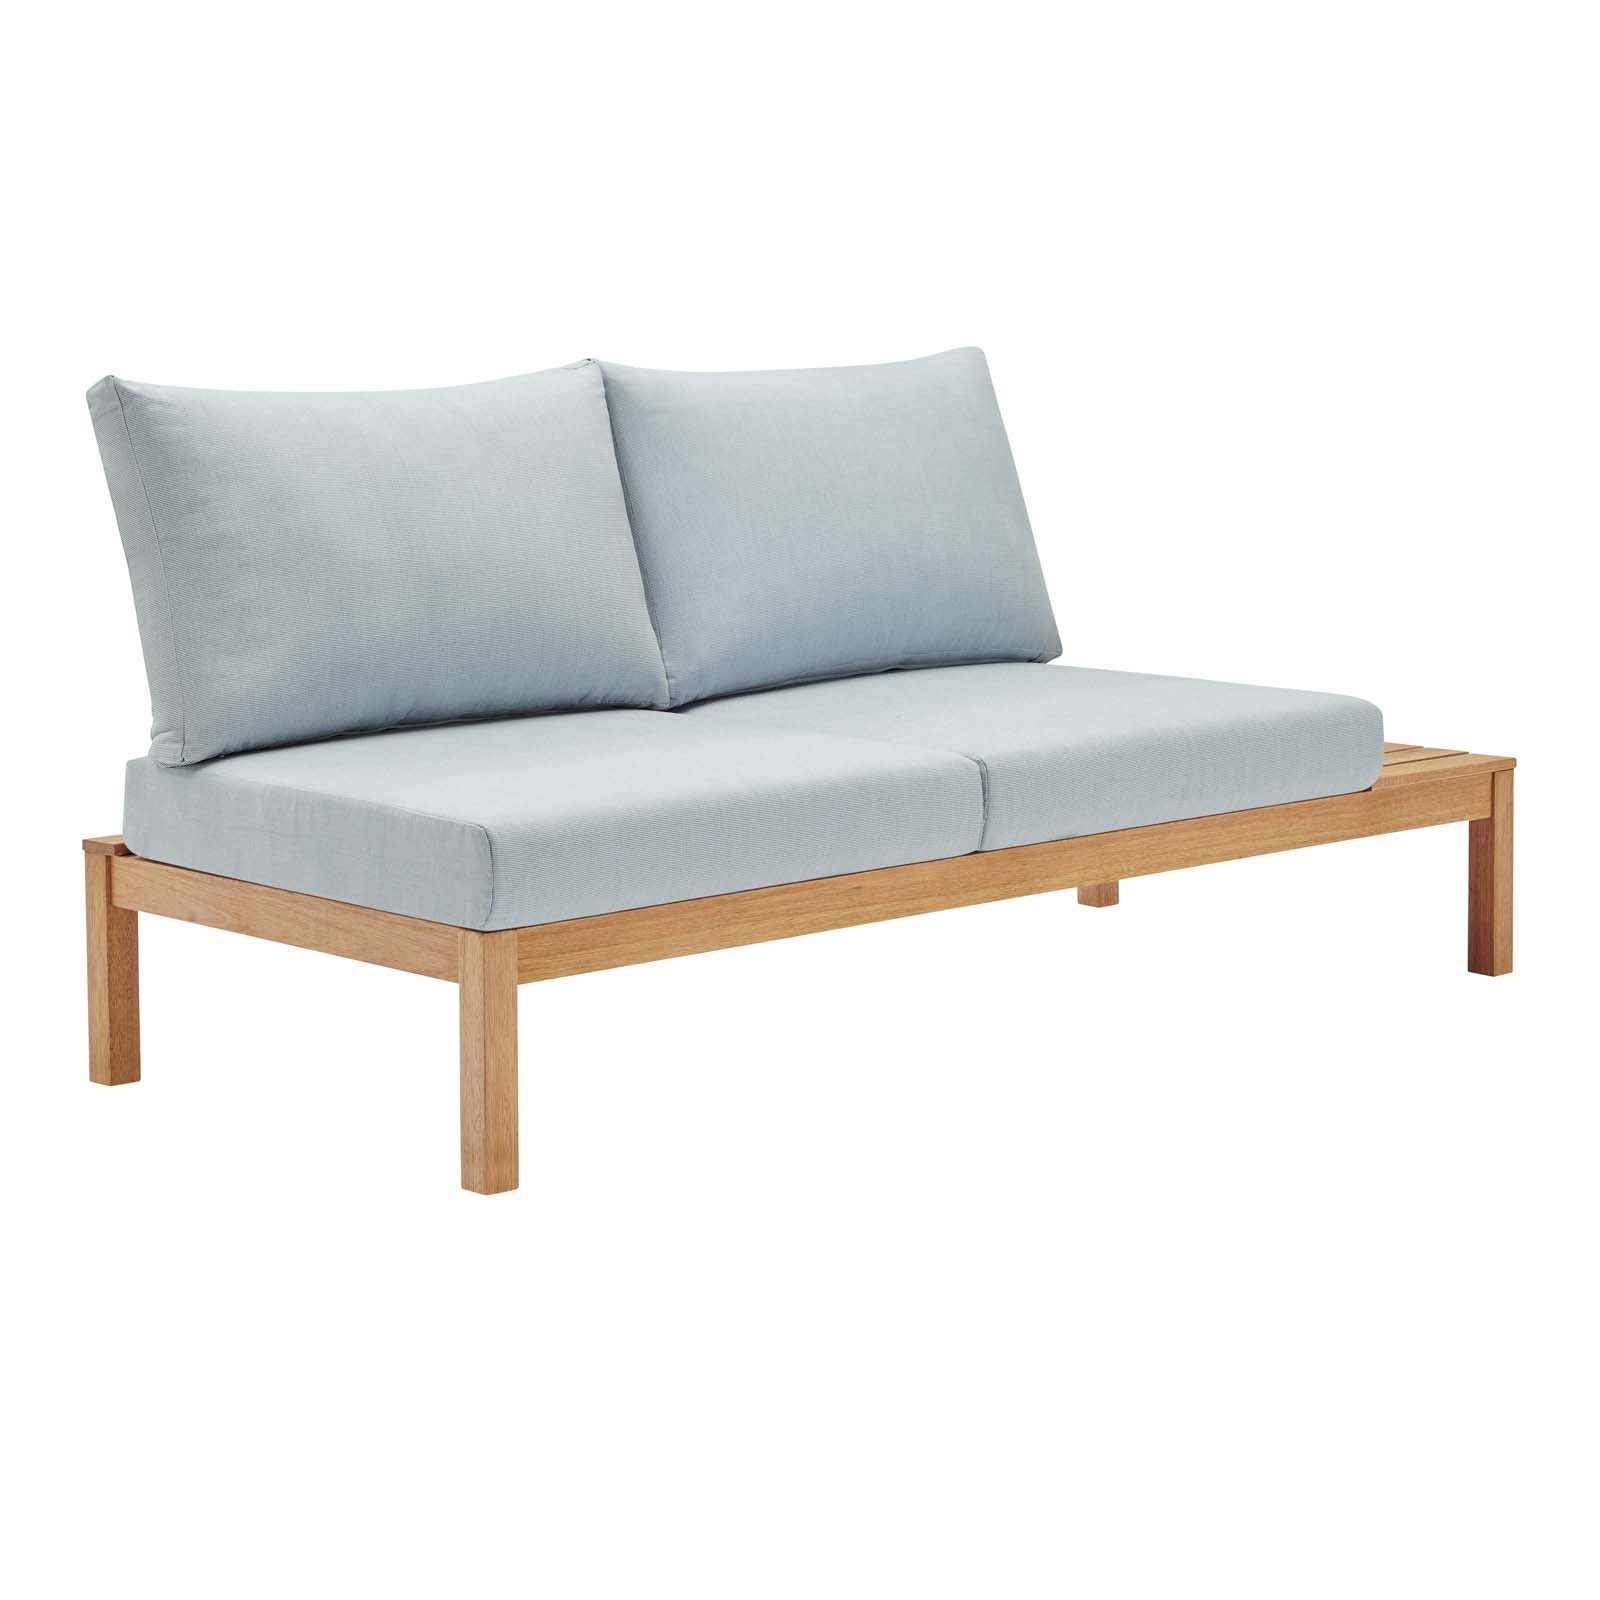 Freeport Karri Wood Outdoor Patio Loveseat with Right-Facing Side End Table in Natural Light Blue